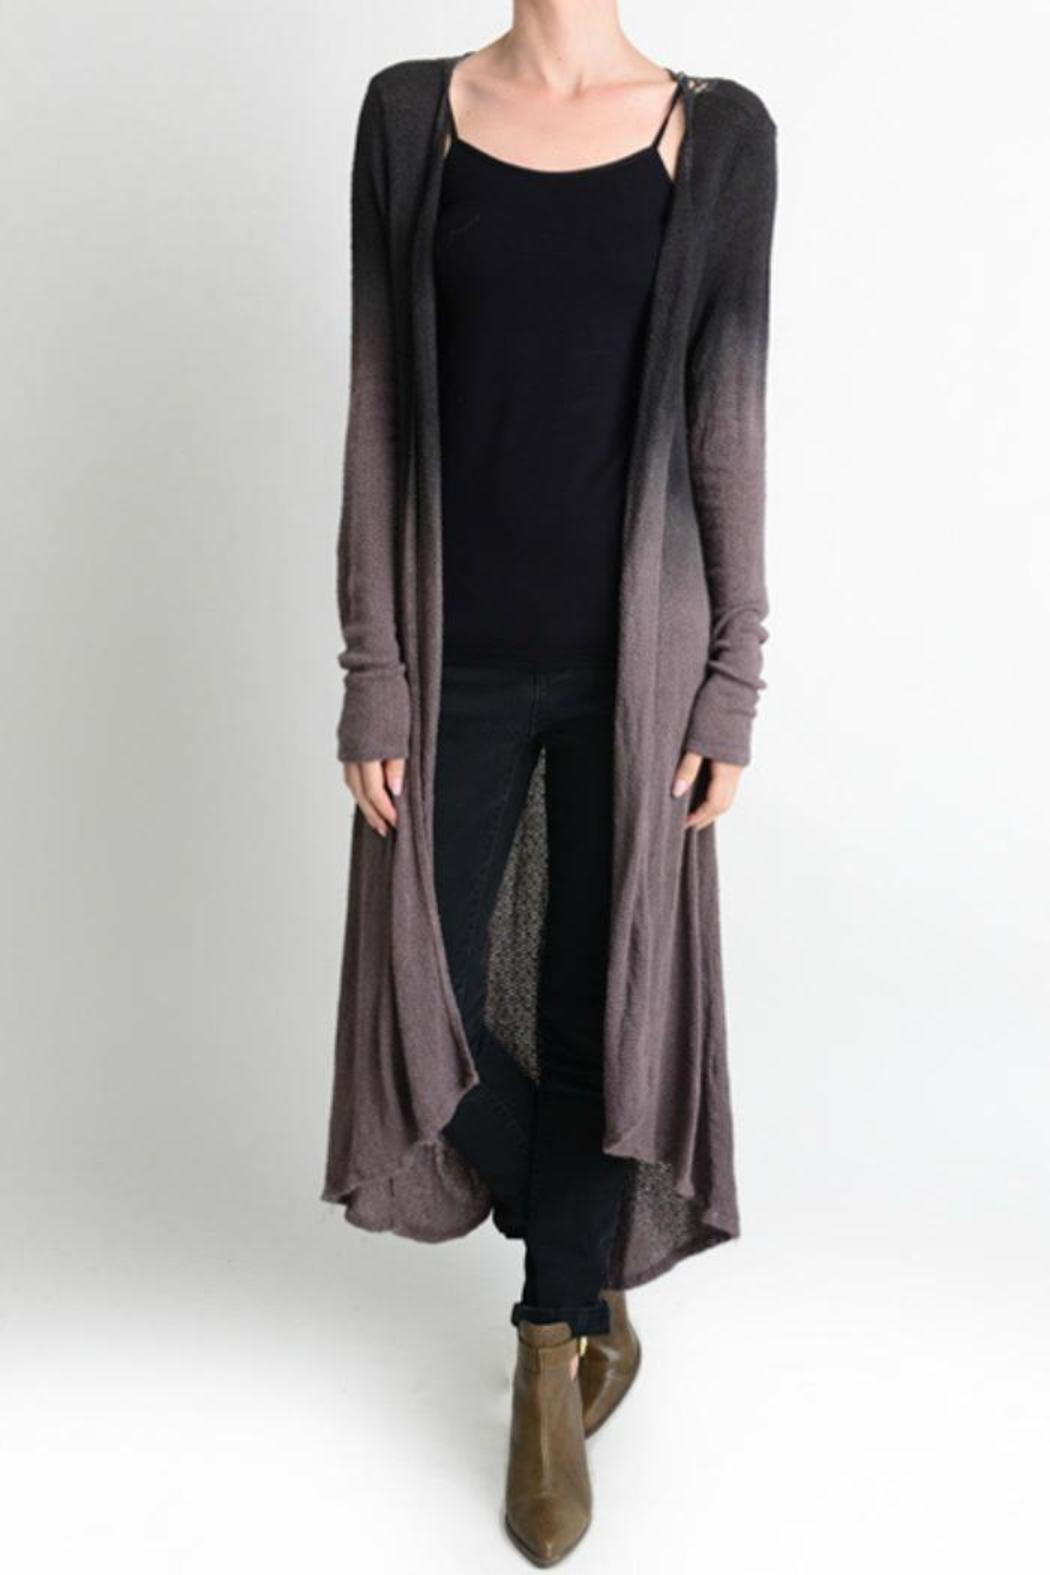 Tparty Ombre Maxi Cardigan from New Jersey by Fly Girl Boutique ...